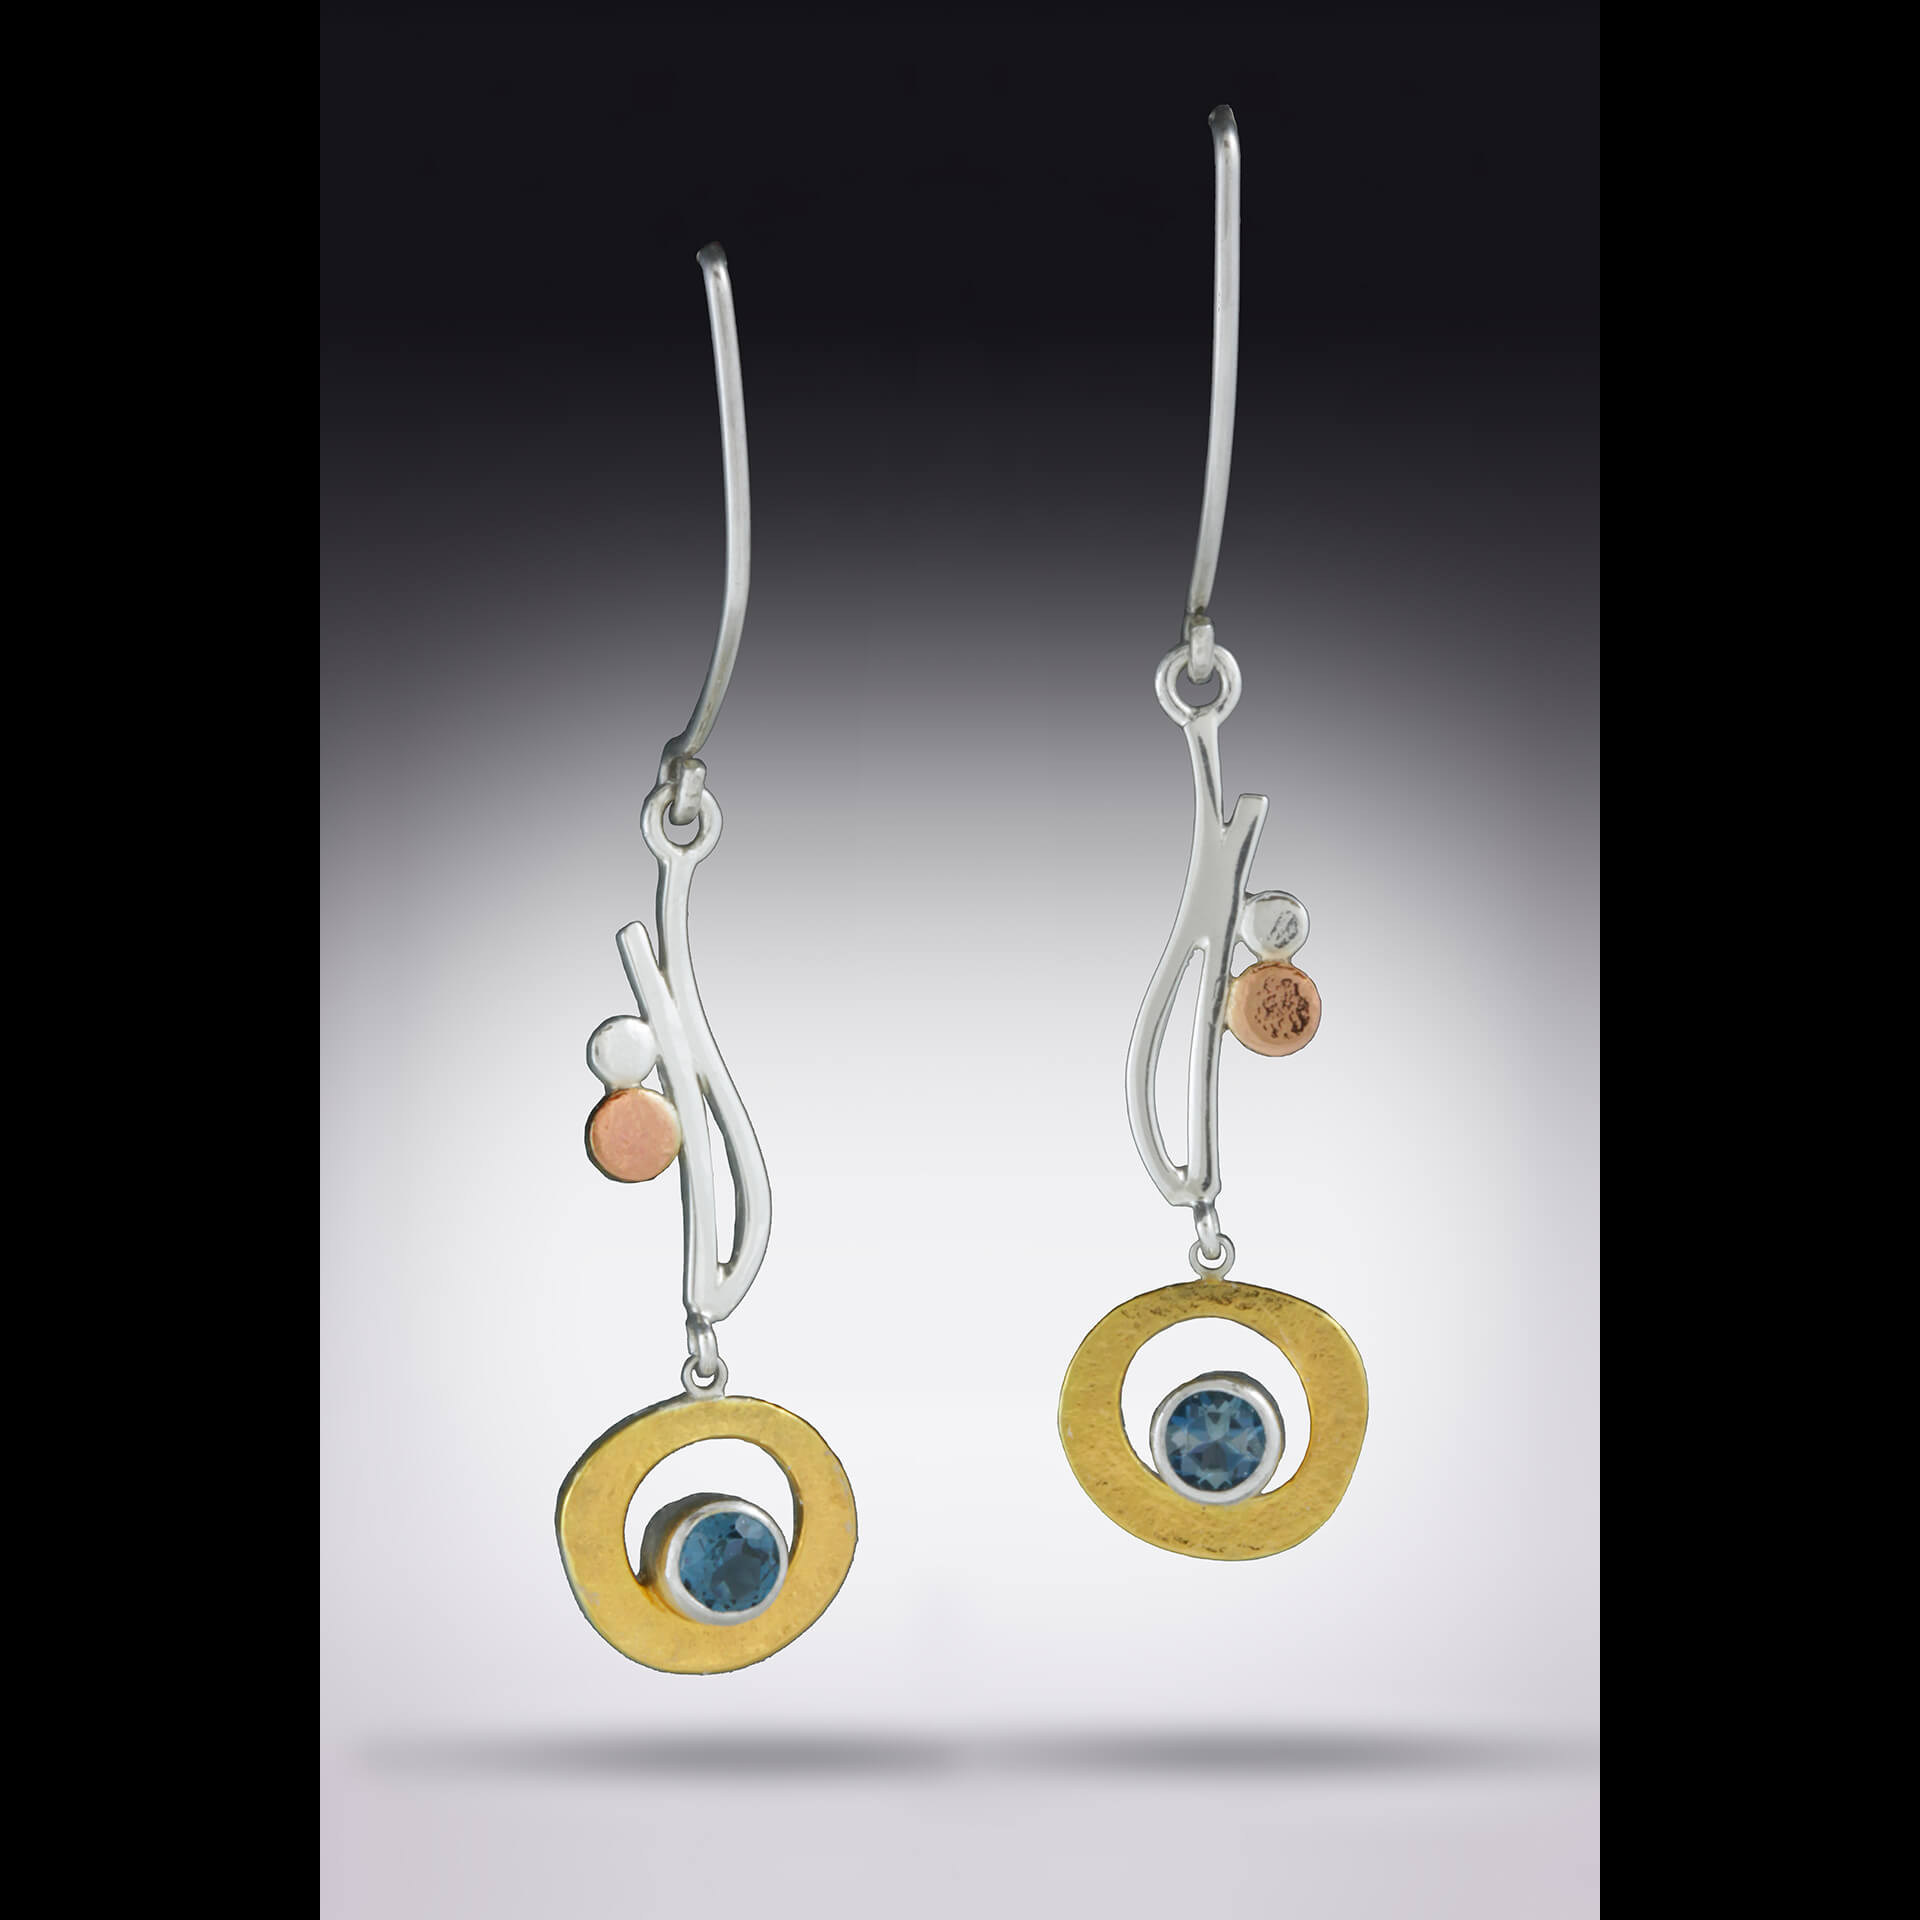 Terry Pool Design, Hand-fabricated jewelry with yellow gold, rose gold, sterling silver and gemstones, citrine, sapphire, blue topaz